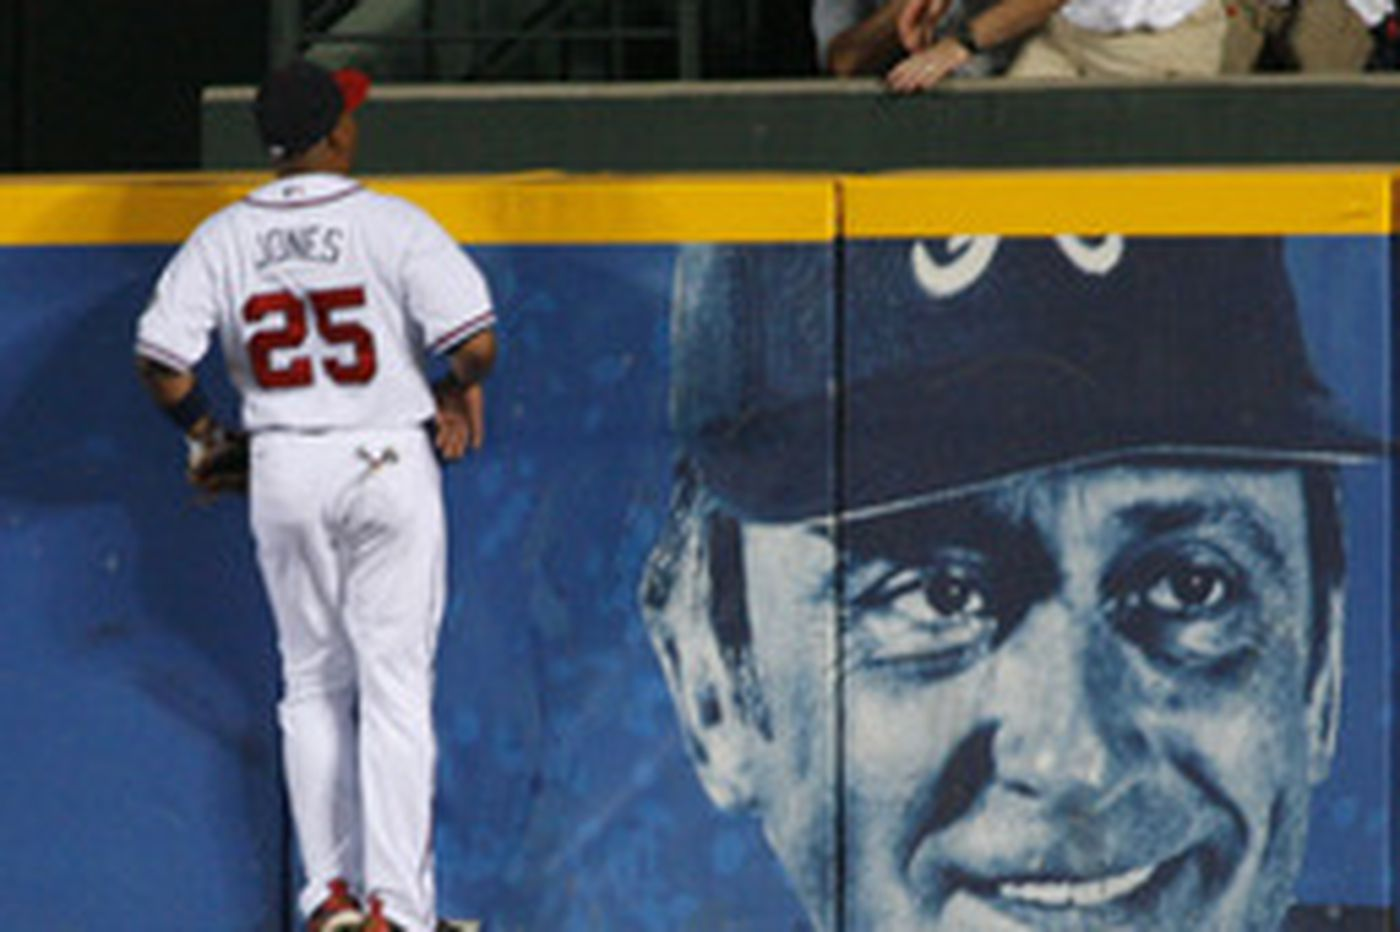 Gordon heads home as Phils fall to Braves